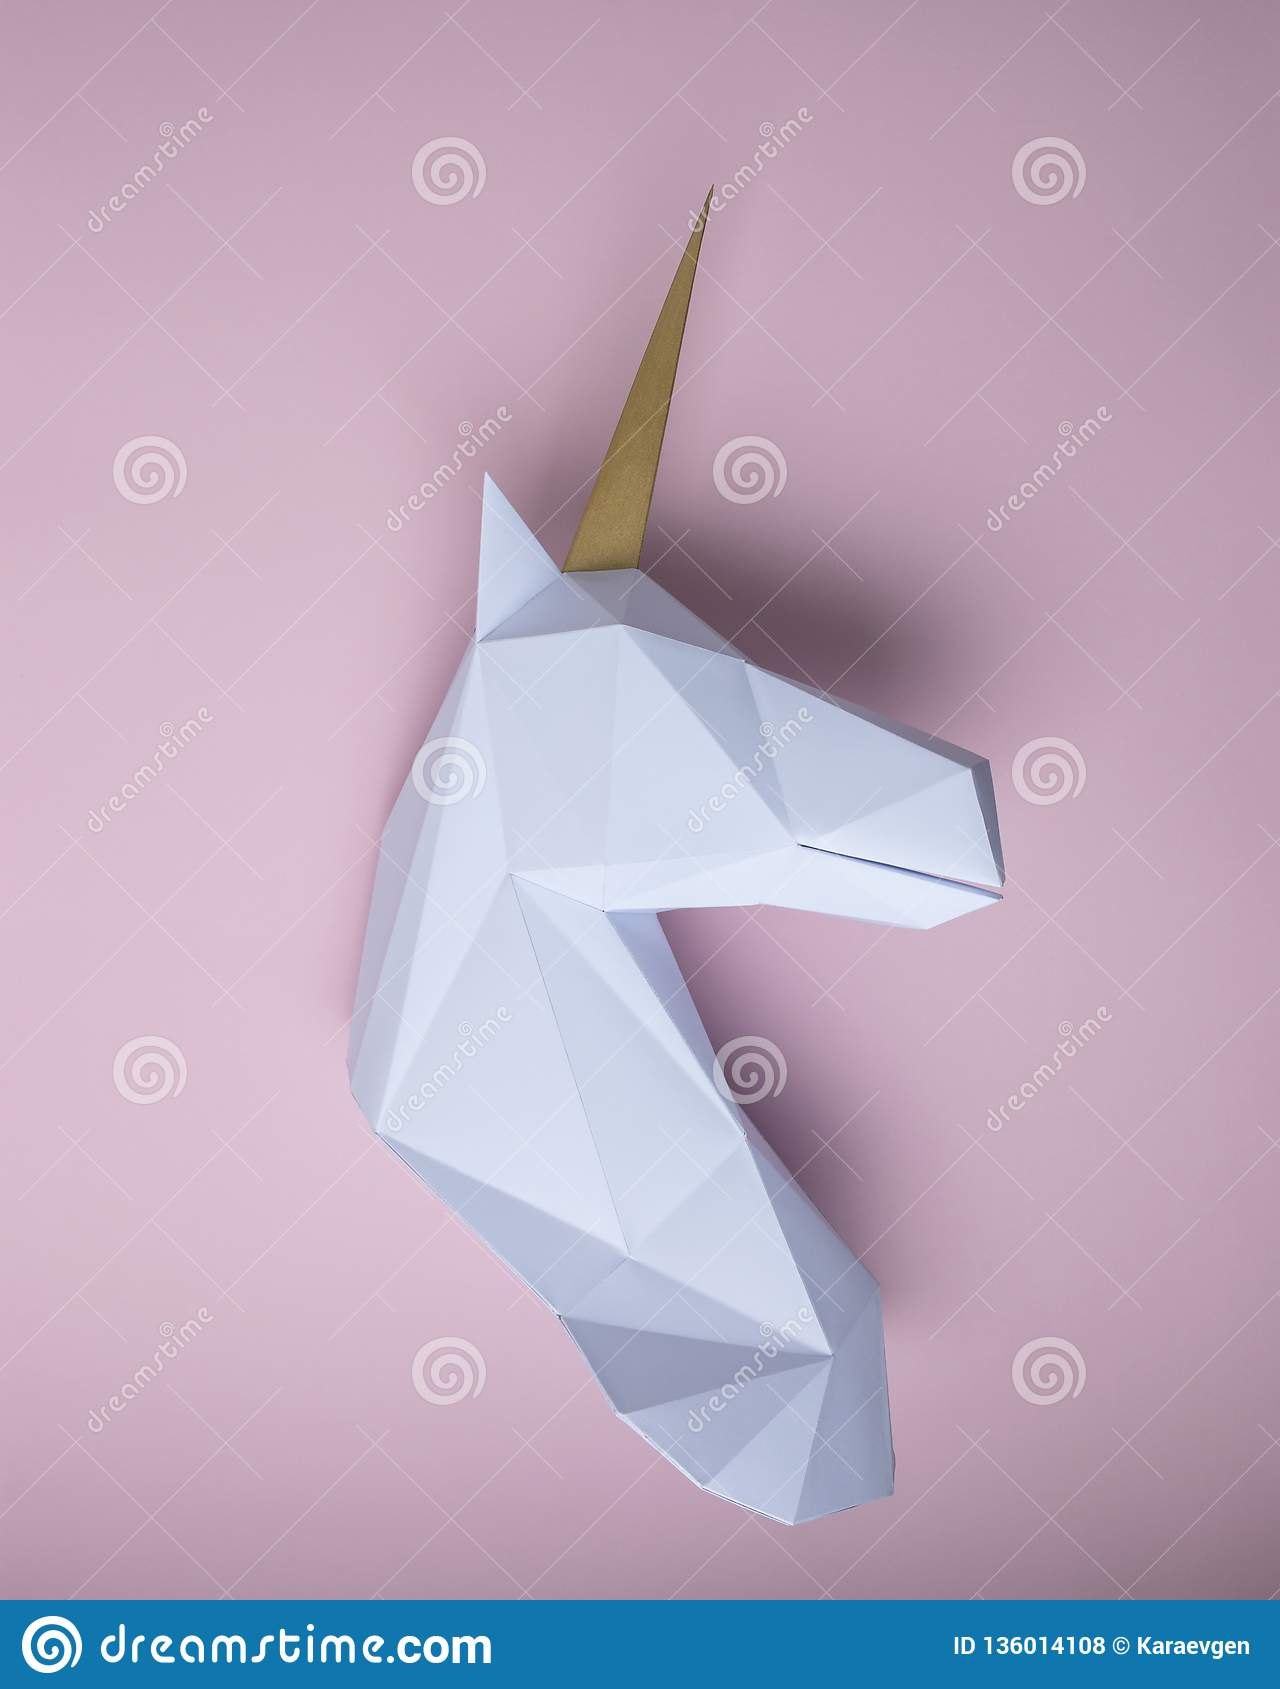 White 3d Papercraft Model Of Unicorn Head On Pink Background